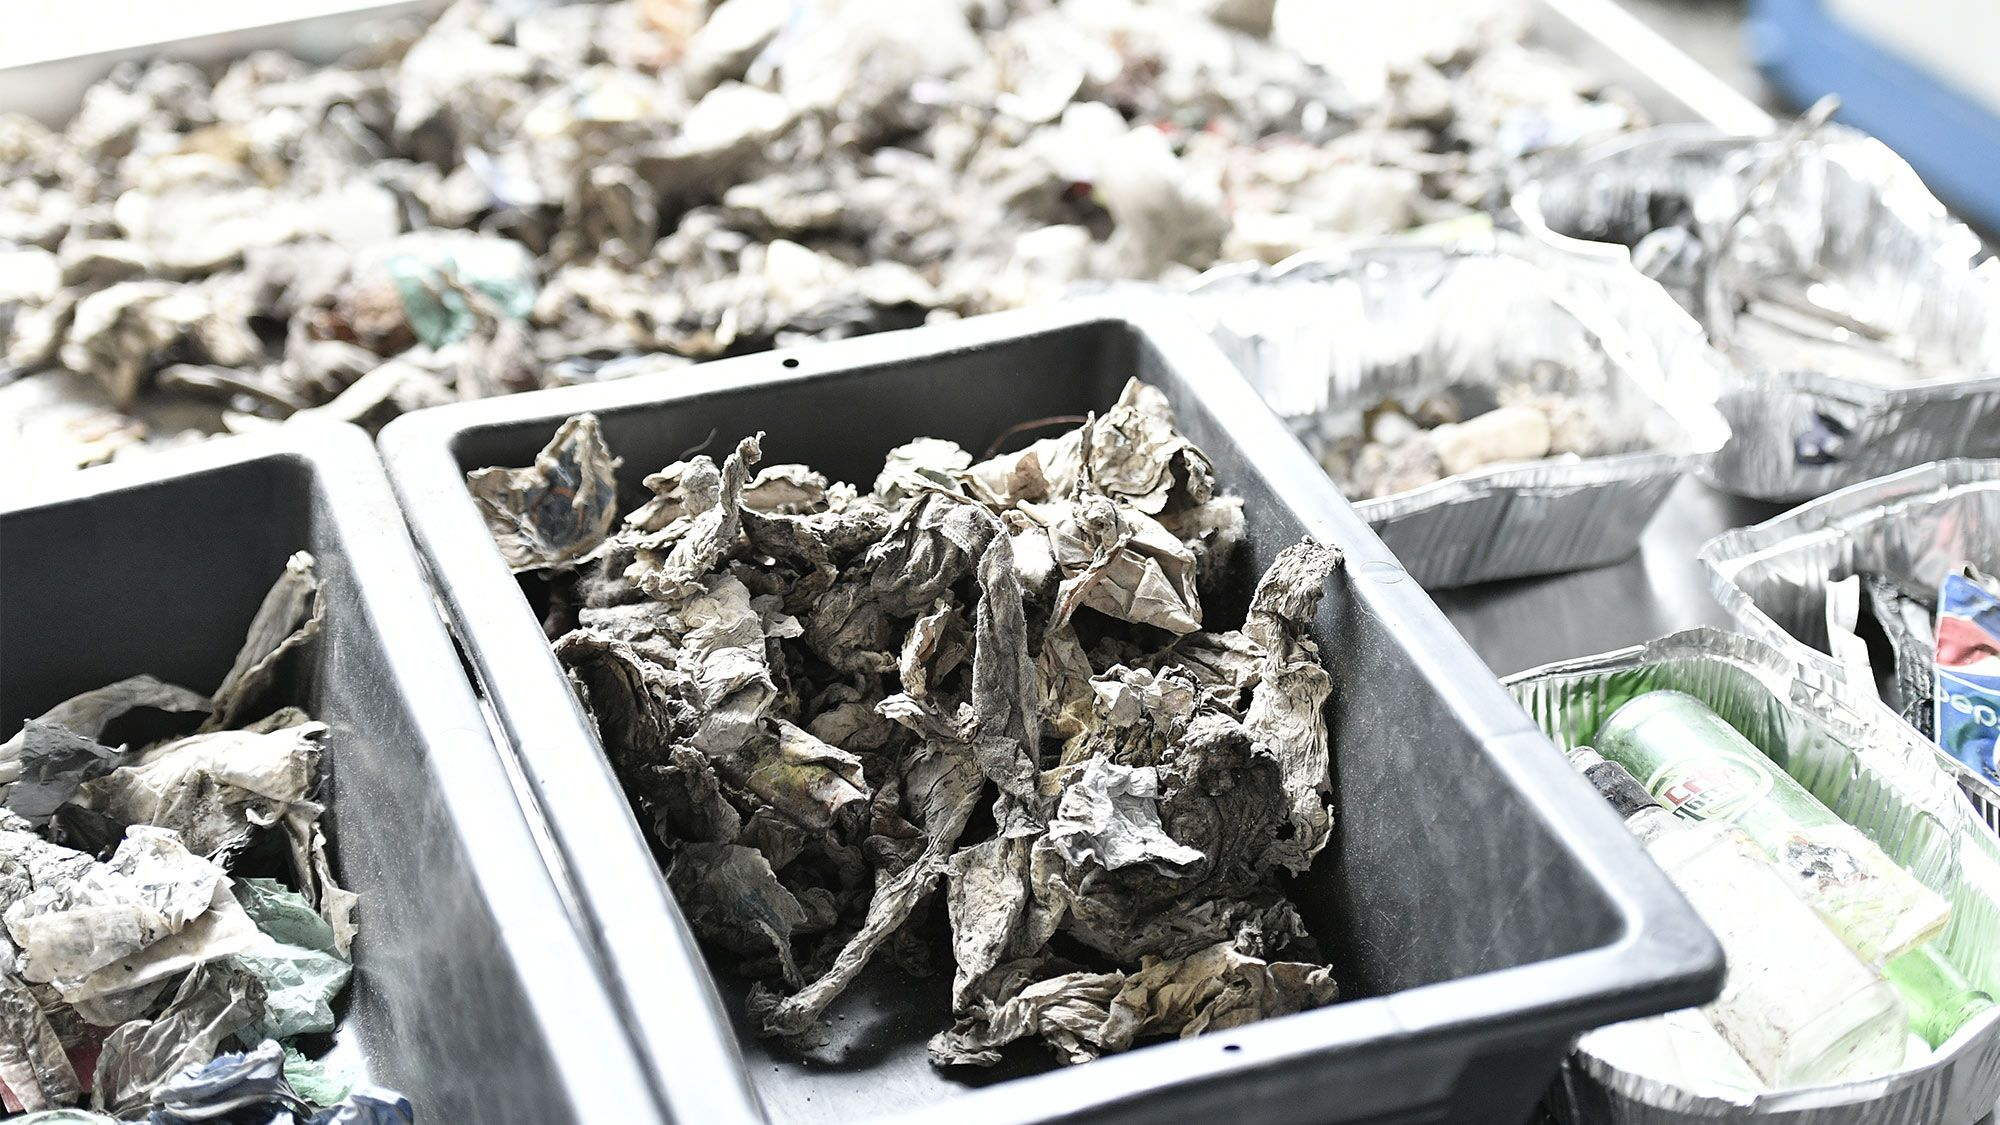 Resource recovery and waste management